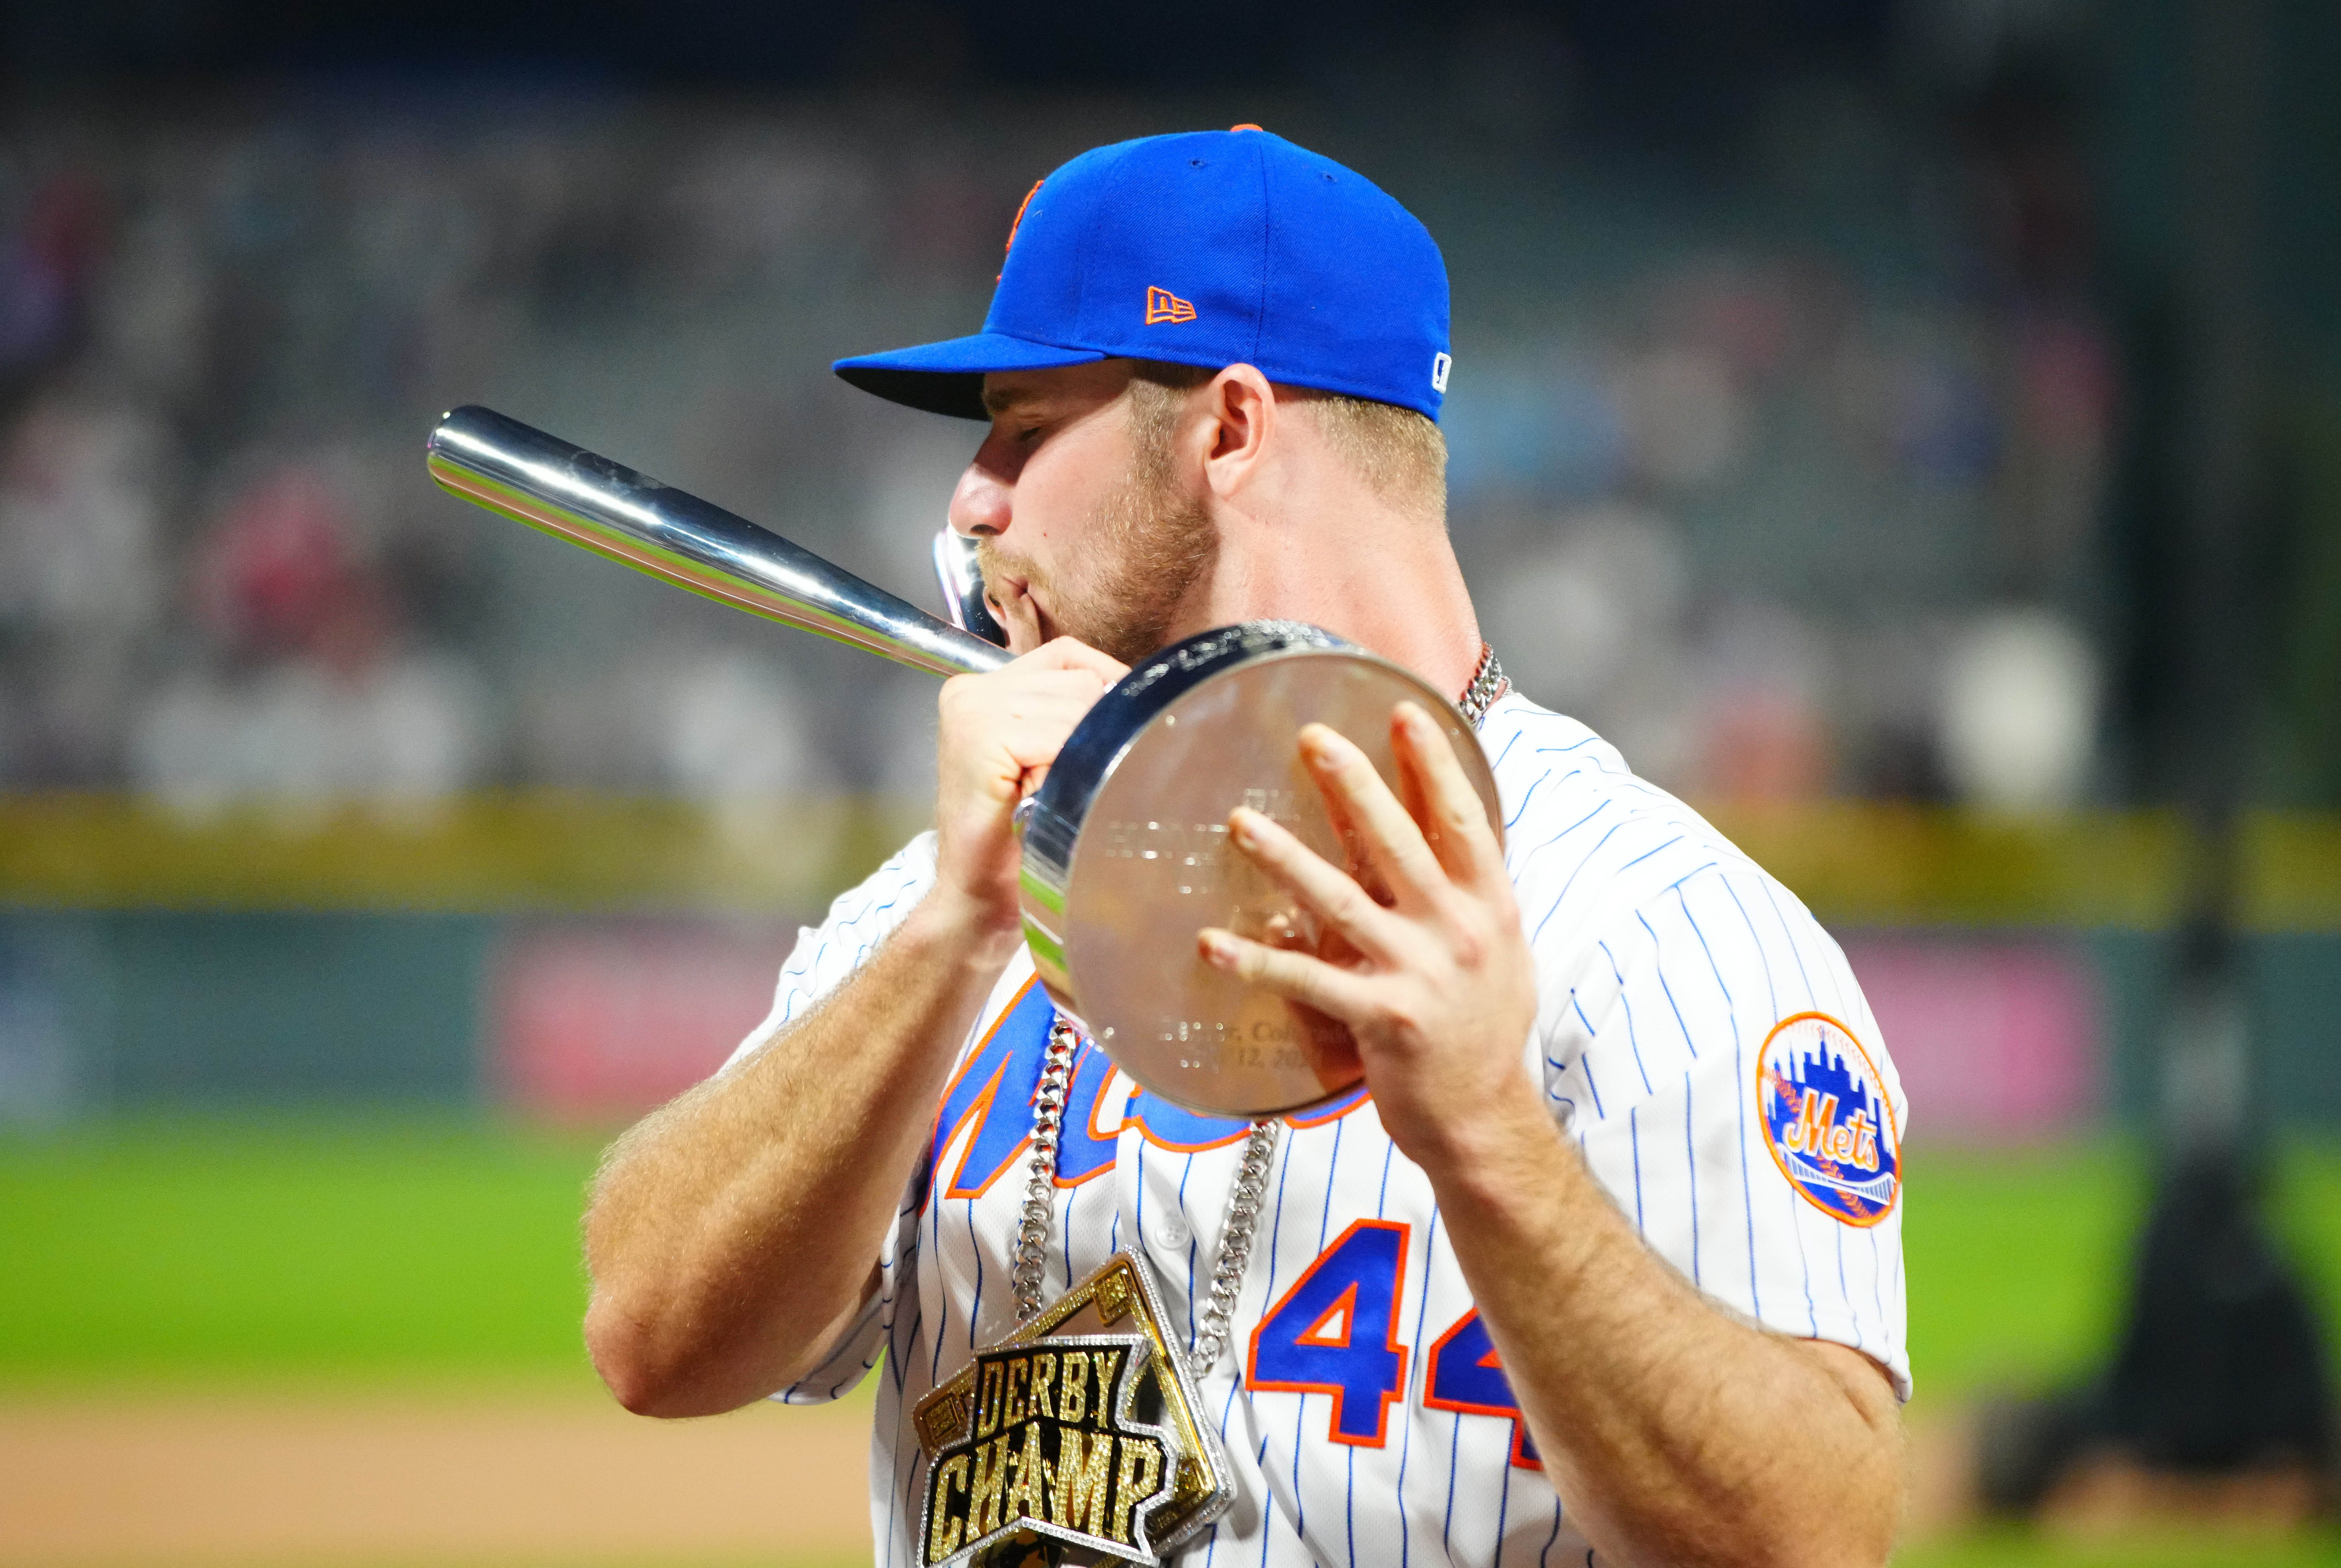 2021 MLB Home Run derby: Pete Alonso defends his crown, while Shohei Ohtani shines in slugfest at Coors Field